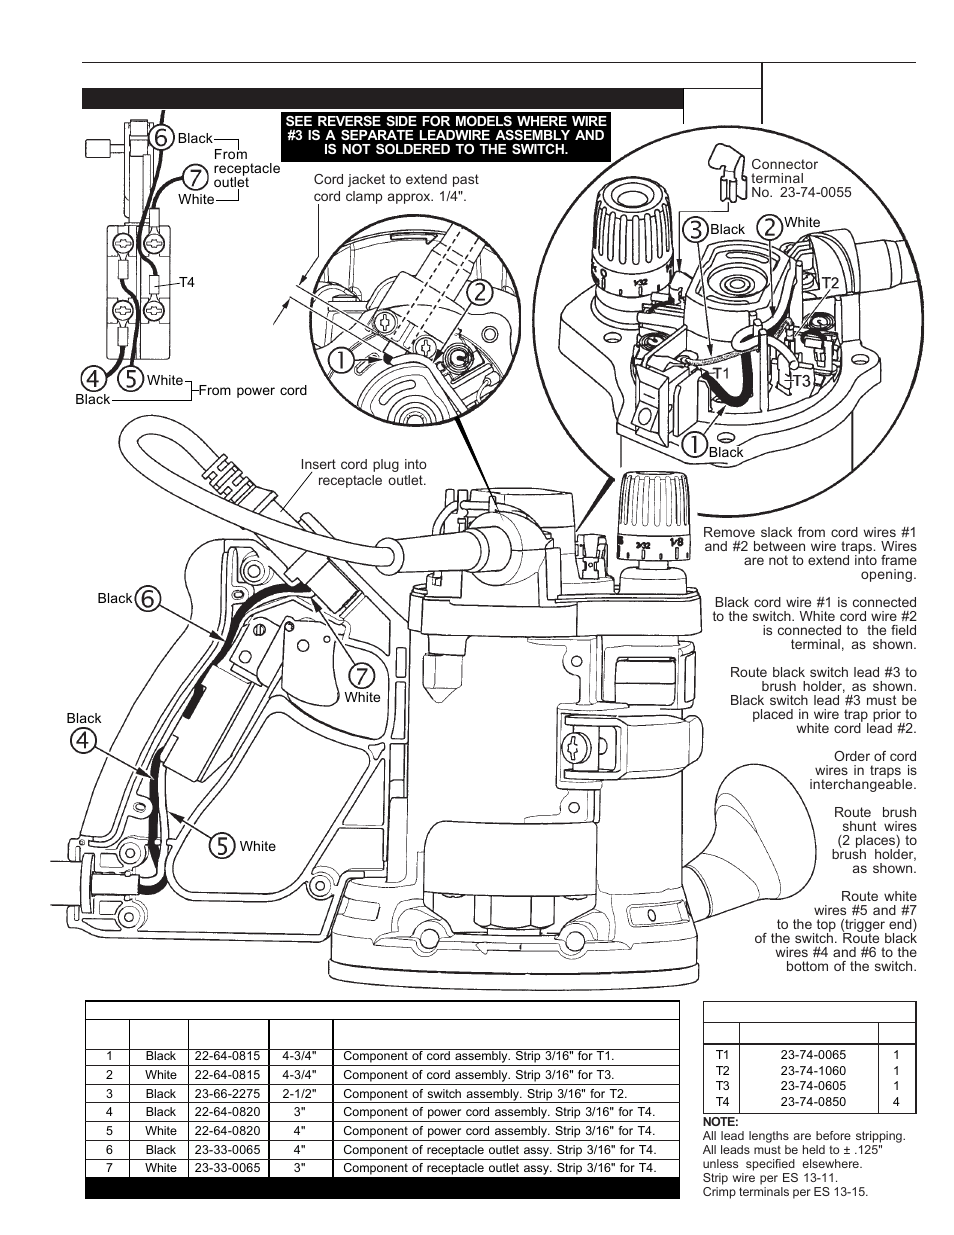 Milwaukee Electrical Cord Wiring Diagram Detailed Schematic Diagrams Power Wire Tool 5619 20 User Manual 2 Pages Intertherm Furnace Parts